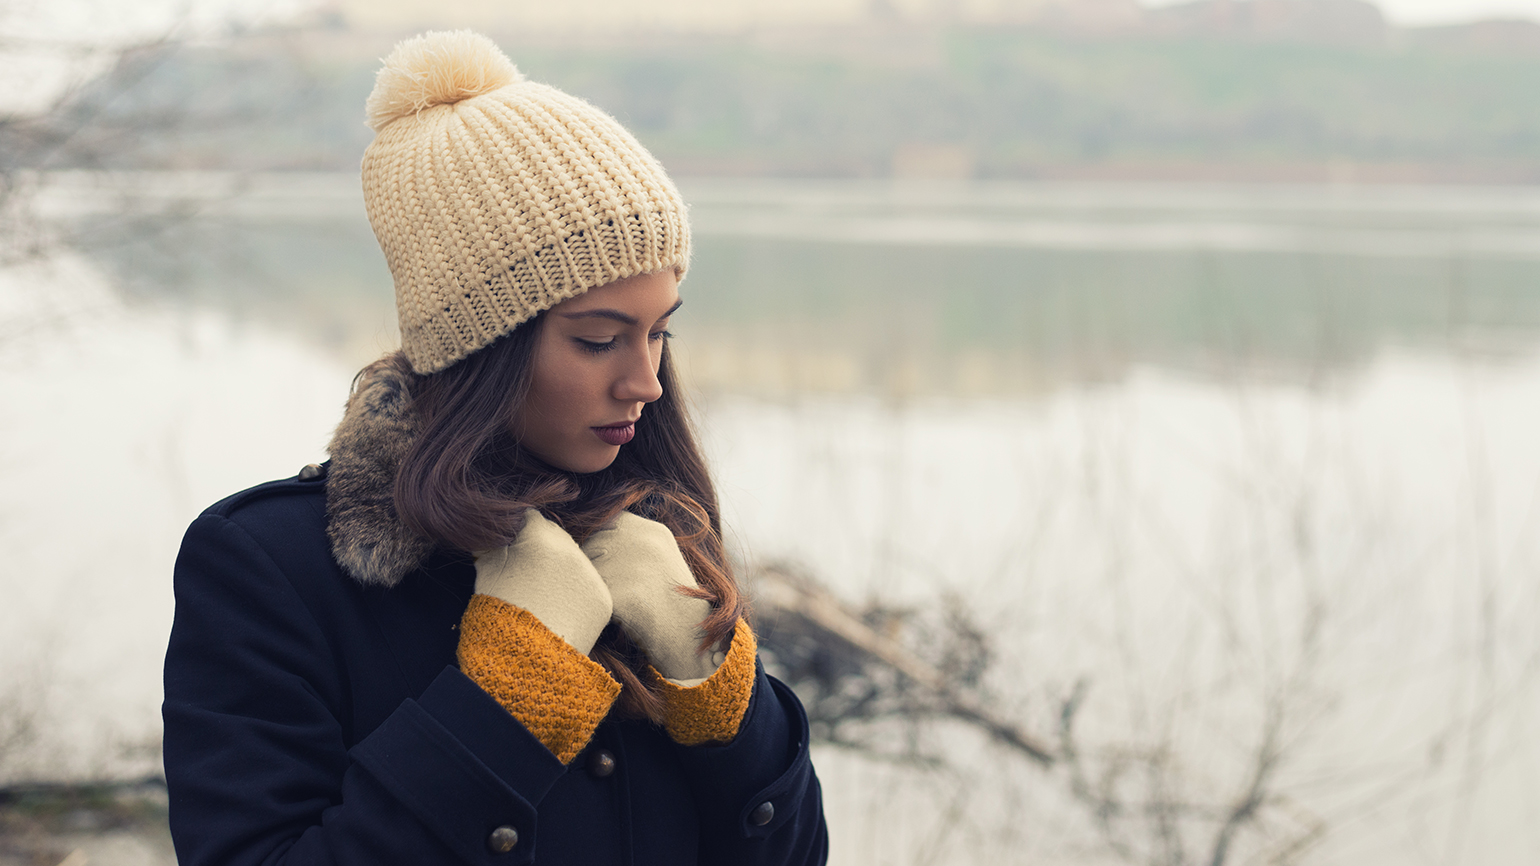 A pensive woman takes a walk on a winter's day